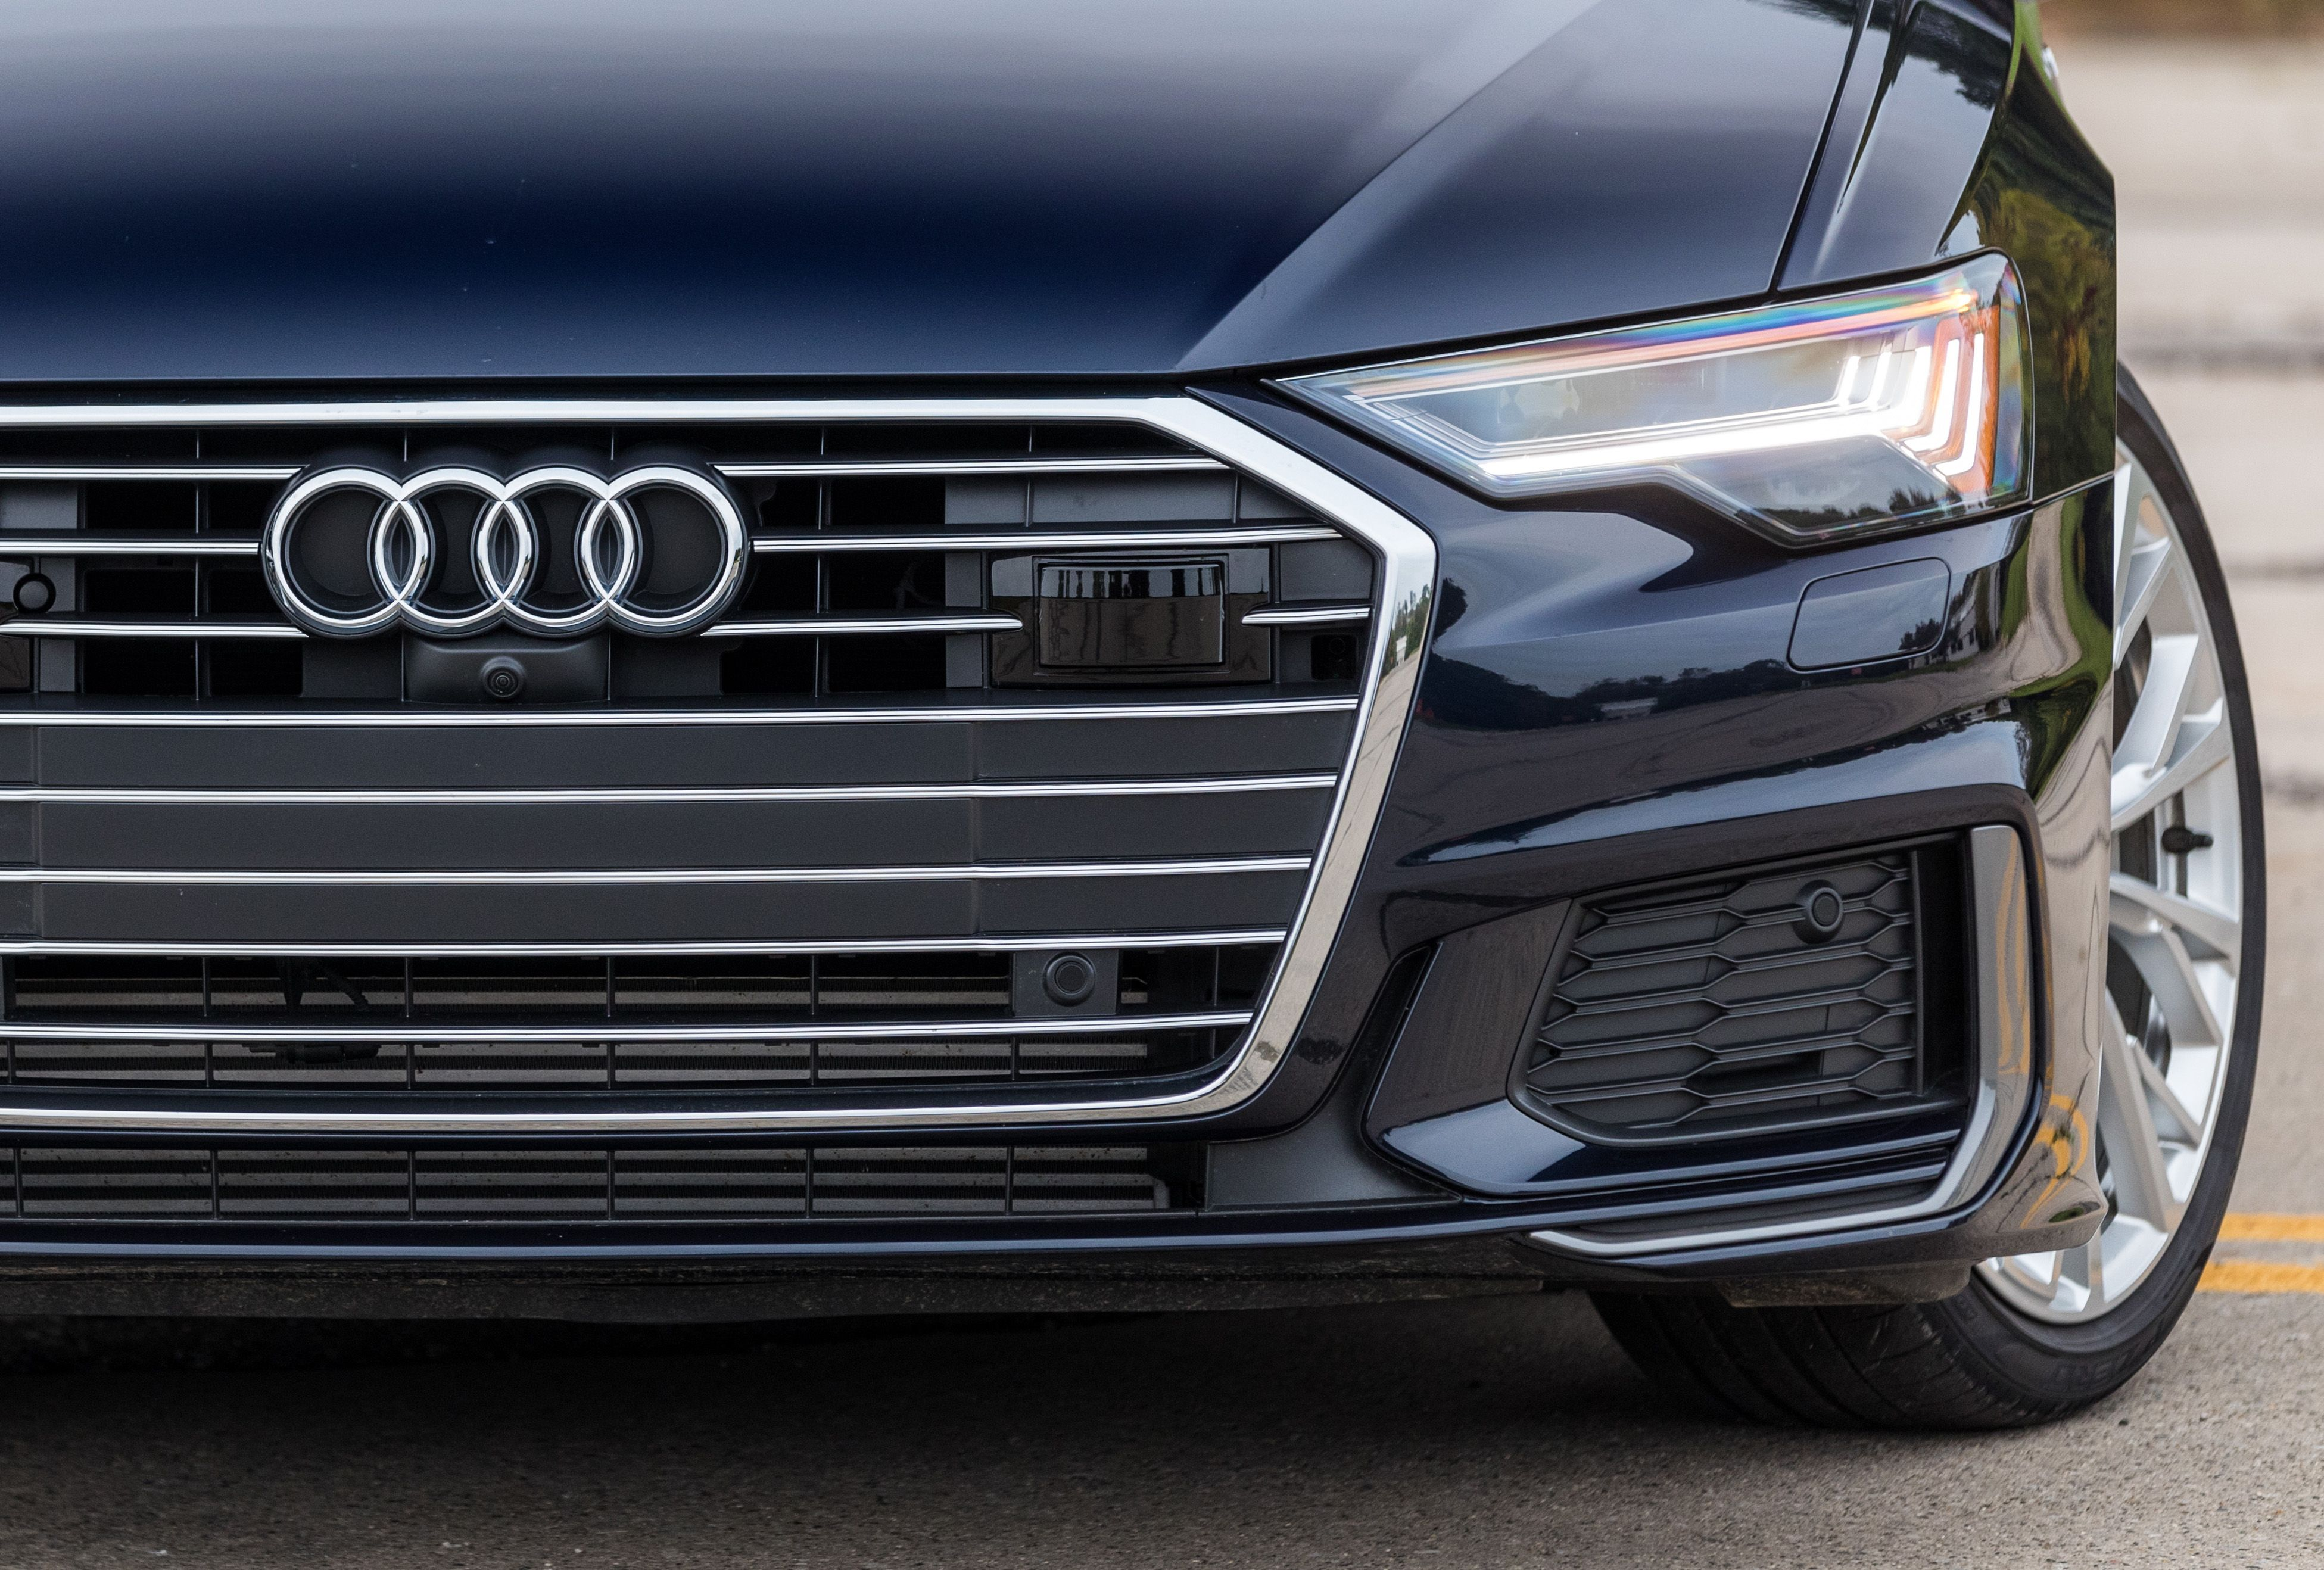 2019 audi a6 reviews audi a6 price, photos, and specs car and driverDiagram Besides Audi A3 Led Headlights On Audi C5 A6 Led Headlight #7